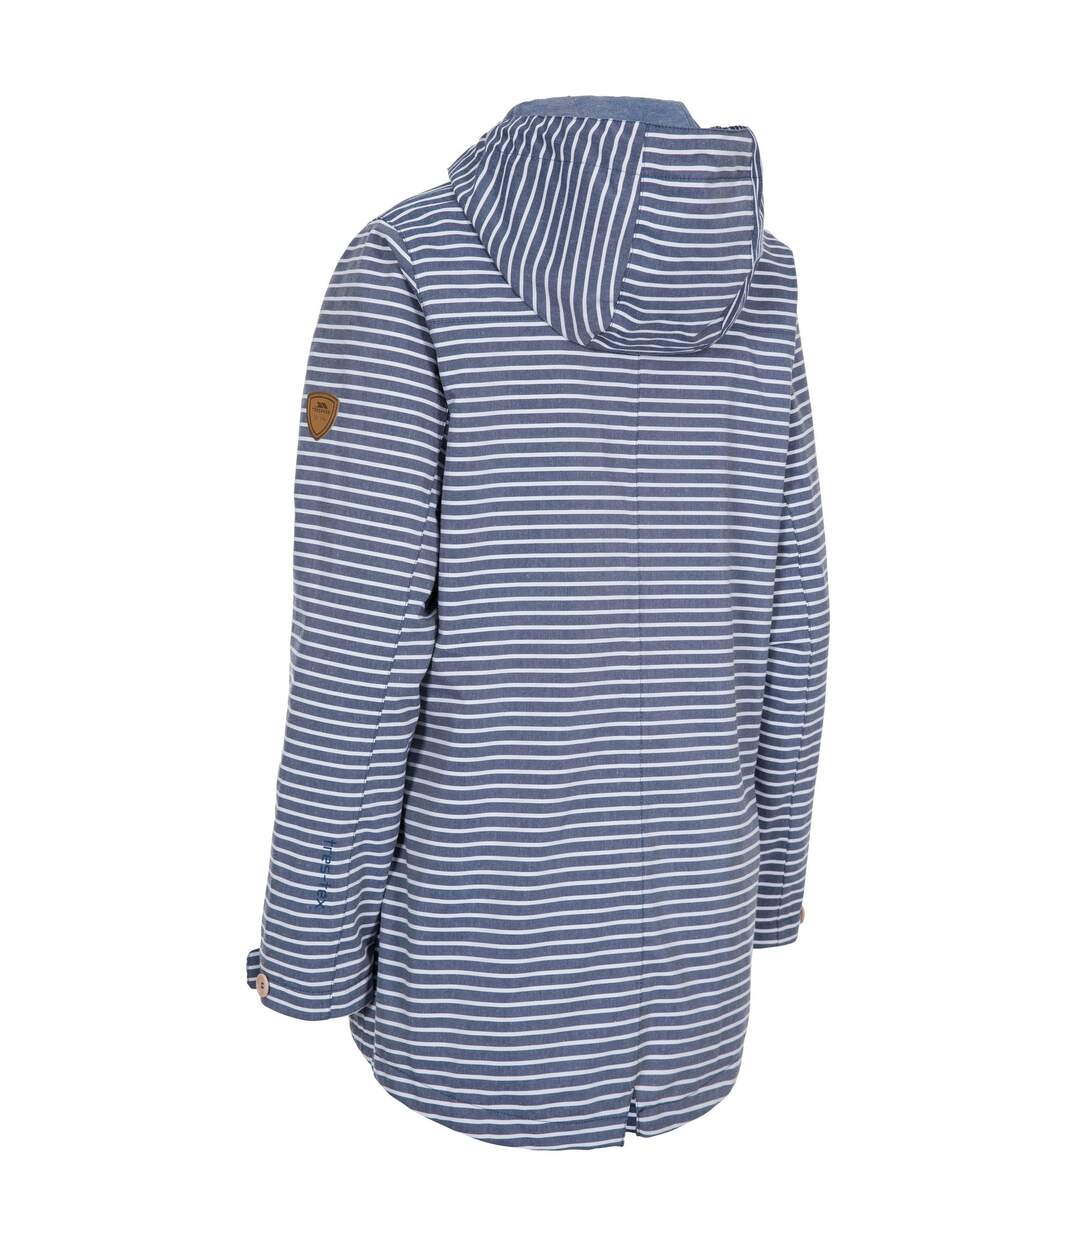 Trespass Womens/Ladies Offshore Waterproof Jacket (Navy Stripe) - UTTP5008